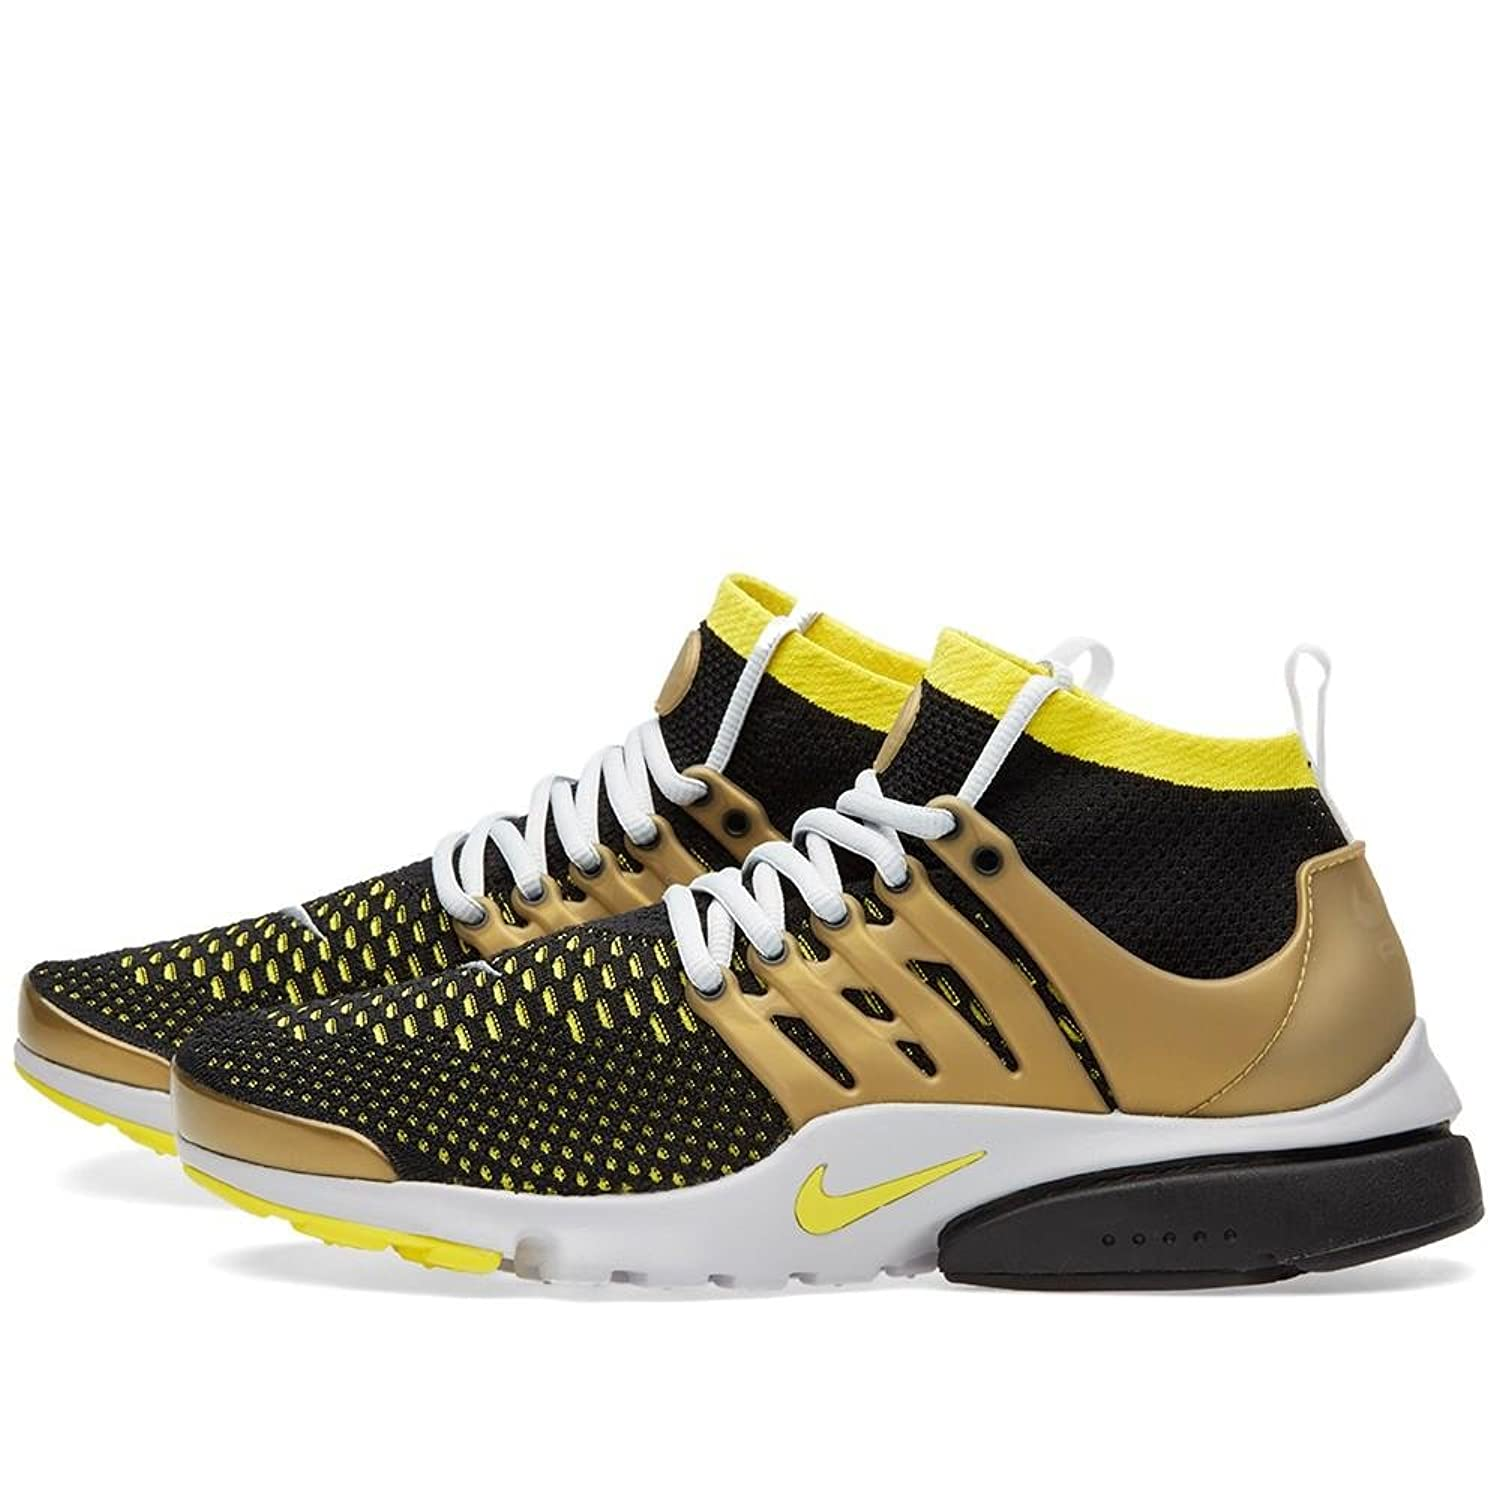 buy popular ab361 f3d43 ... presto melon love this color i usually wear a 7.5 in nike free but  sized down to 7 for this style which is true to size. 4e0eb 1fc20  get  amazon nike ...